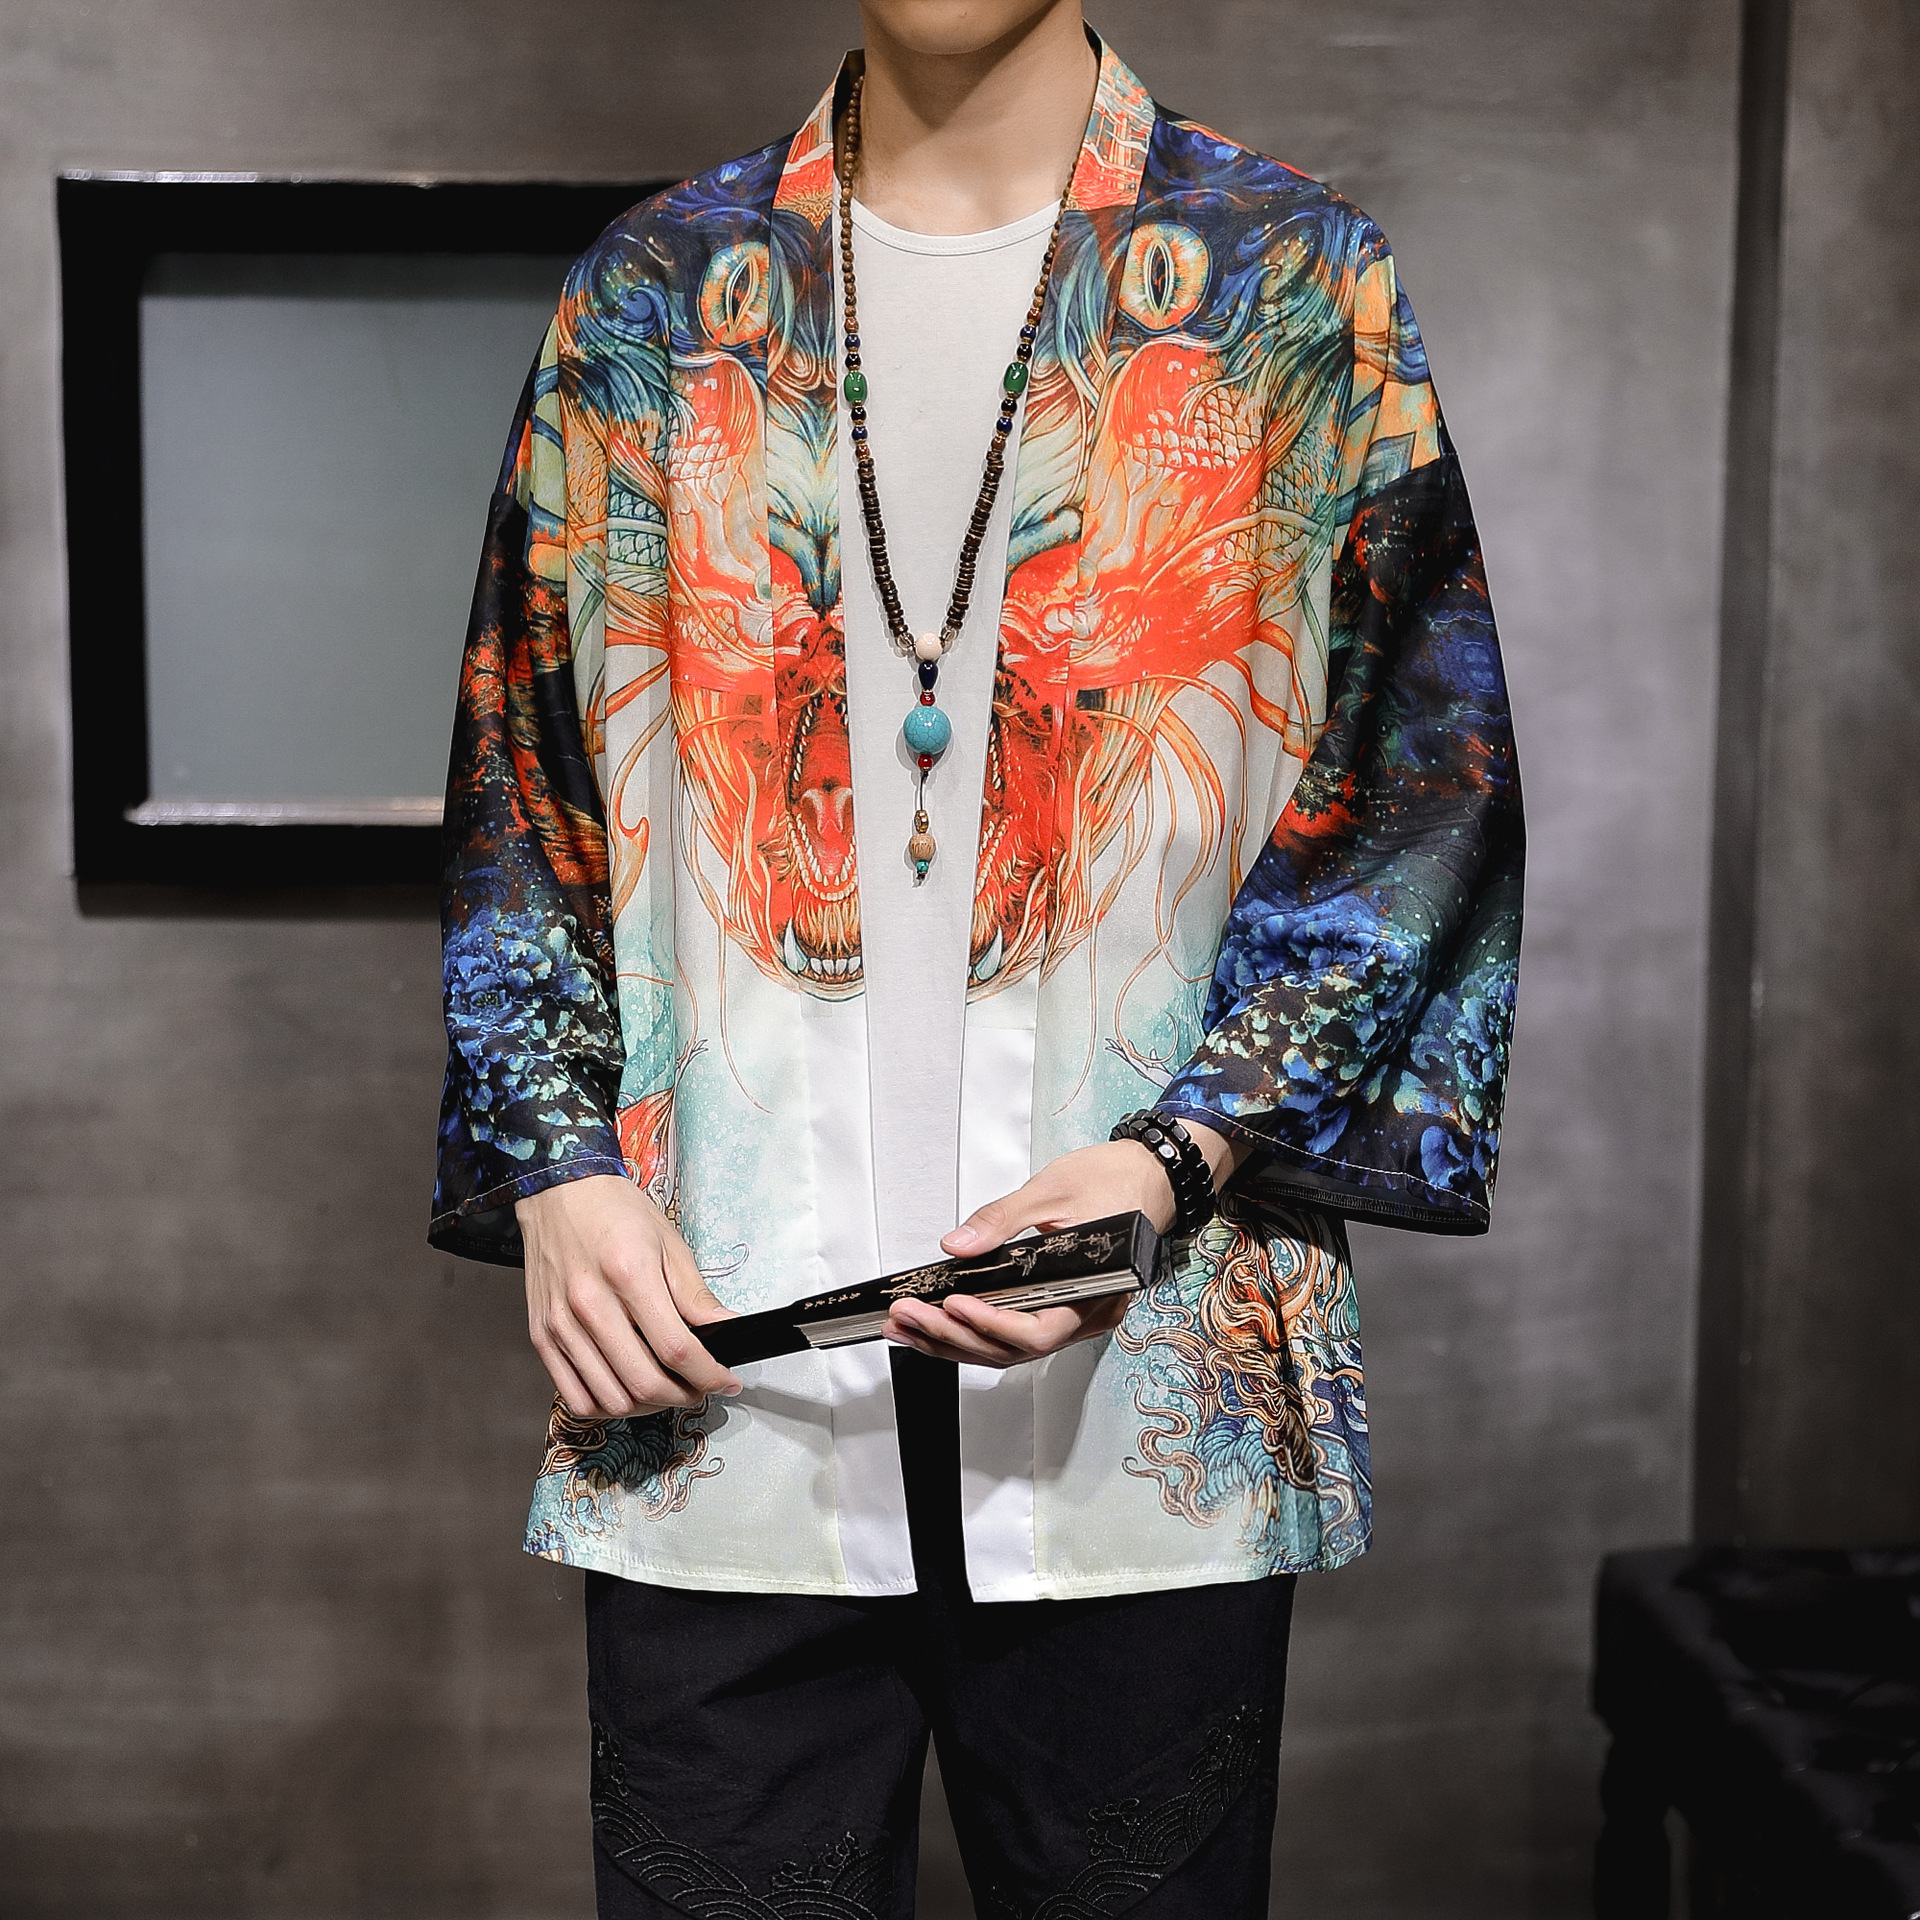 #3947 Summer 2020 Vintage Black Kimonn Jacket Men Thin Loose Vintage Streetwear Hip Hop Jacket Men Kimono Coat 3D Printed M-5XL